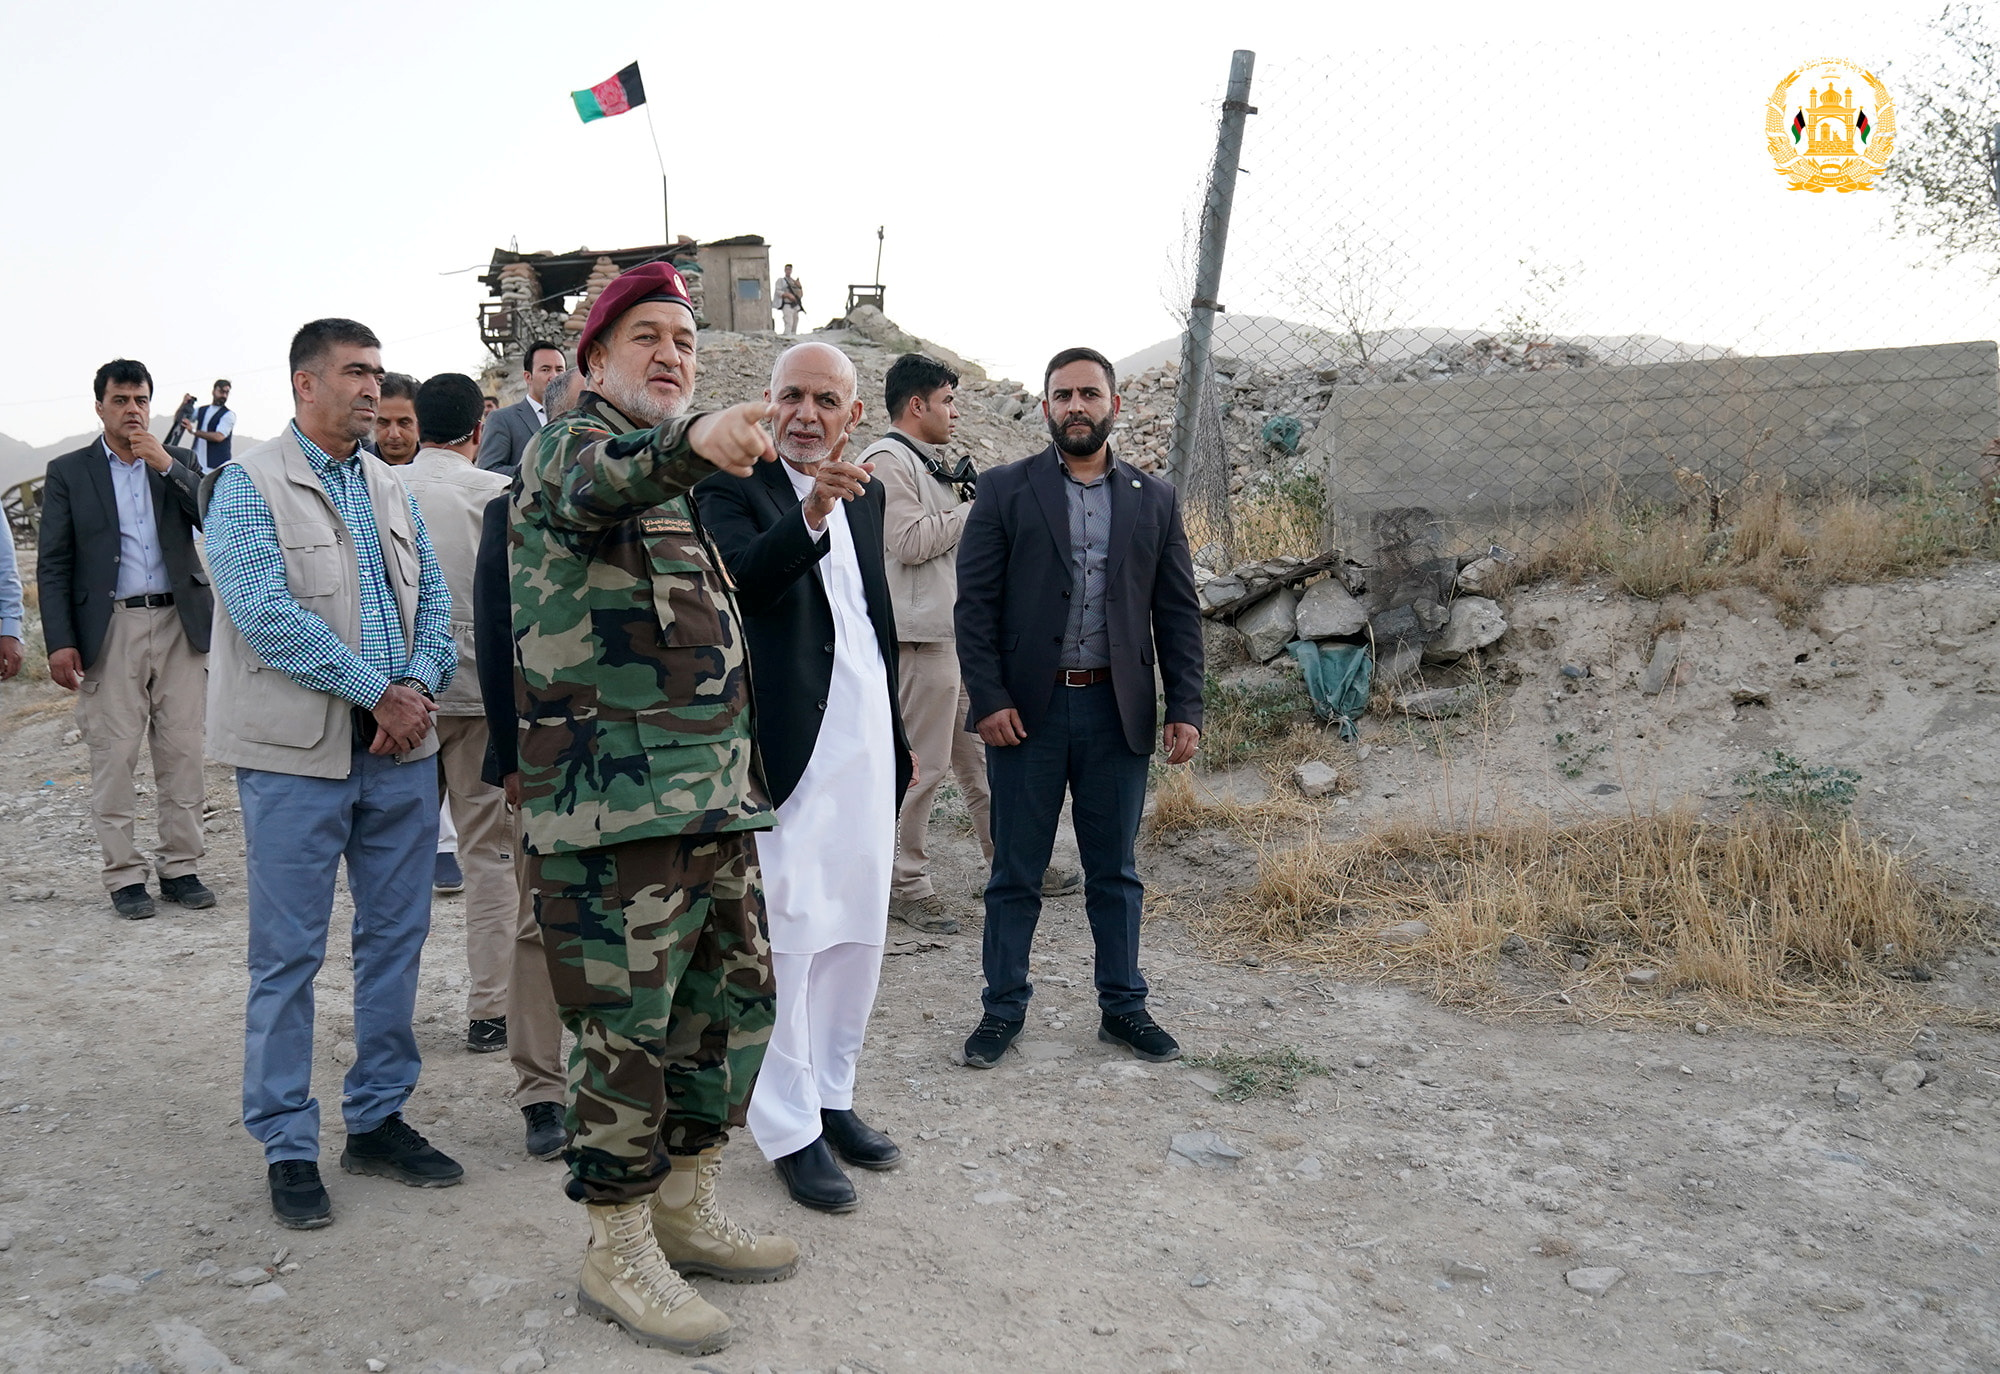 Afghanistan's President Ashraf Ghani and acting defence minister Bismillah Khan Mohammadi visit military corps in Kabul, Afghanistan August 14, 2021. Afghan Presidential Palace/Handout via REUTERS